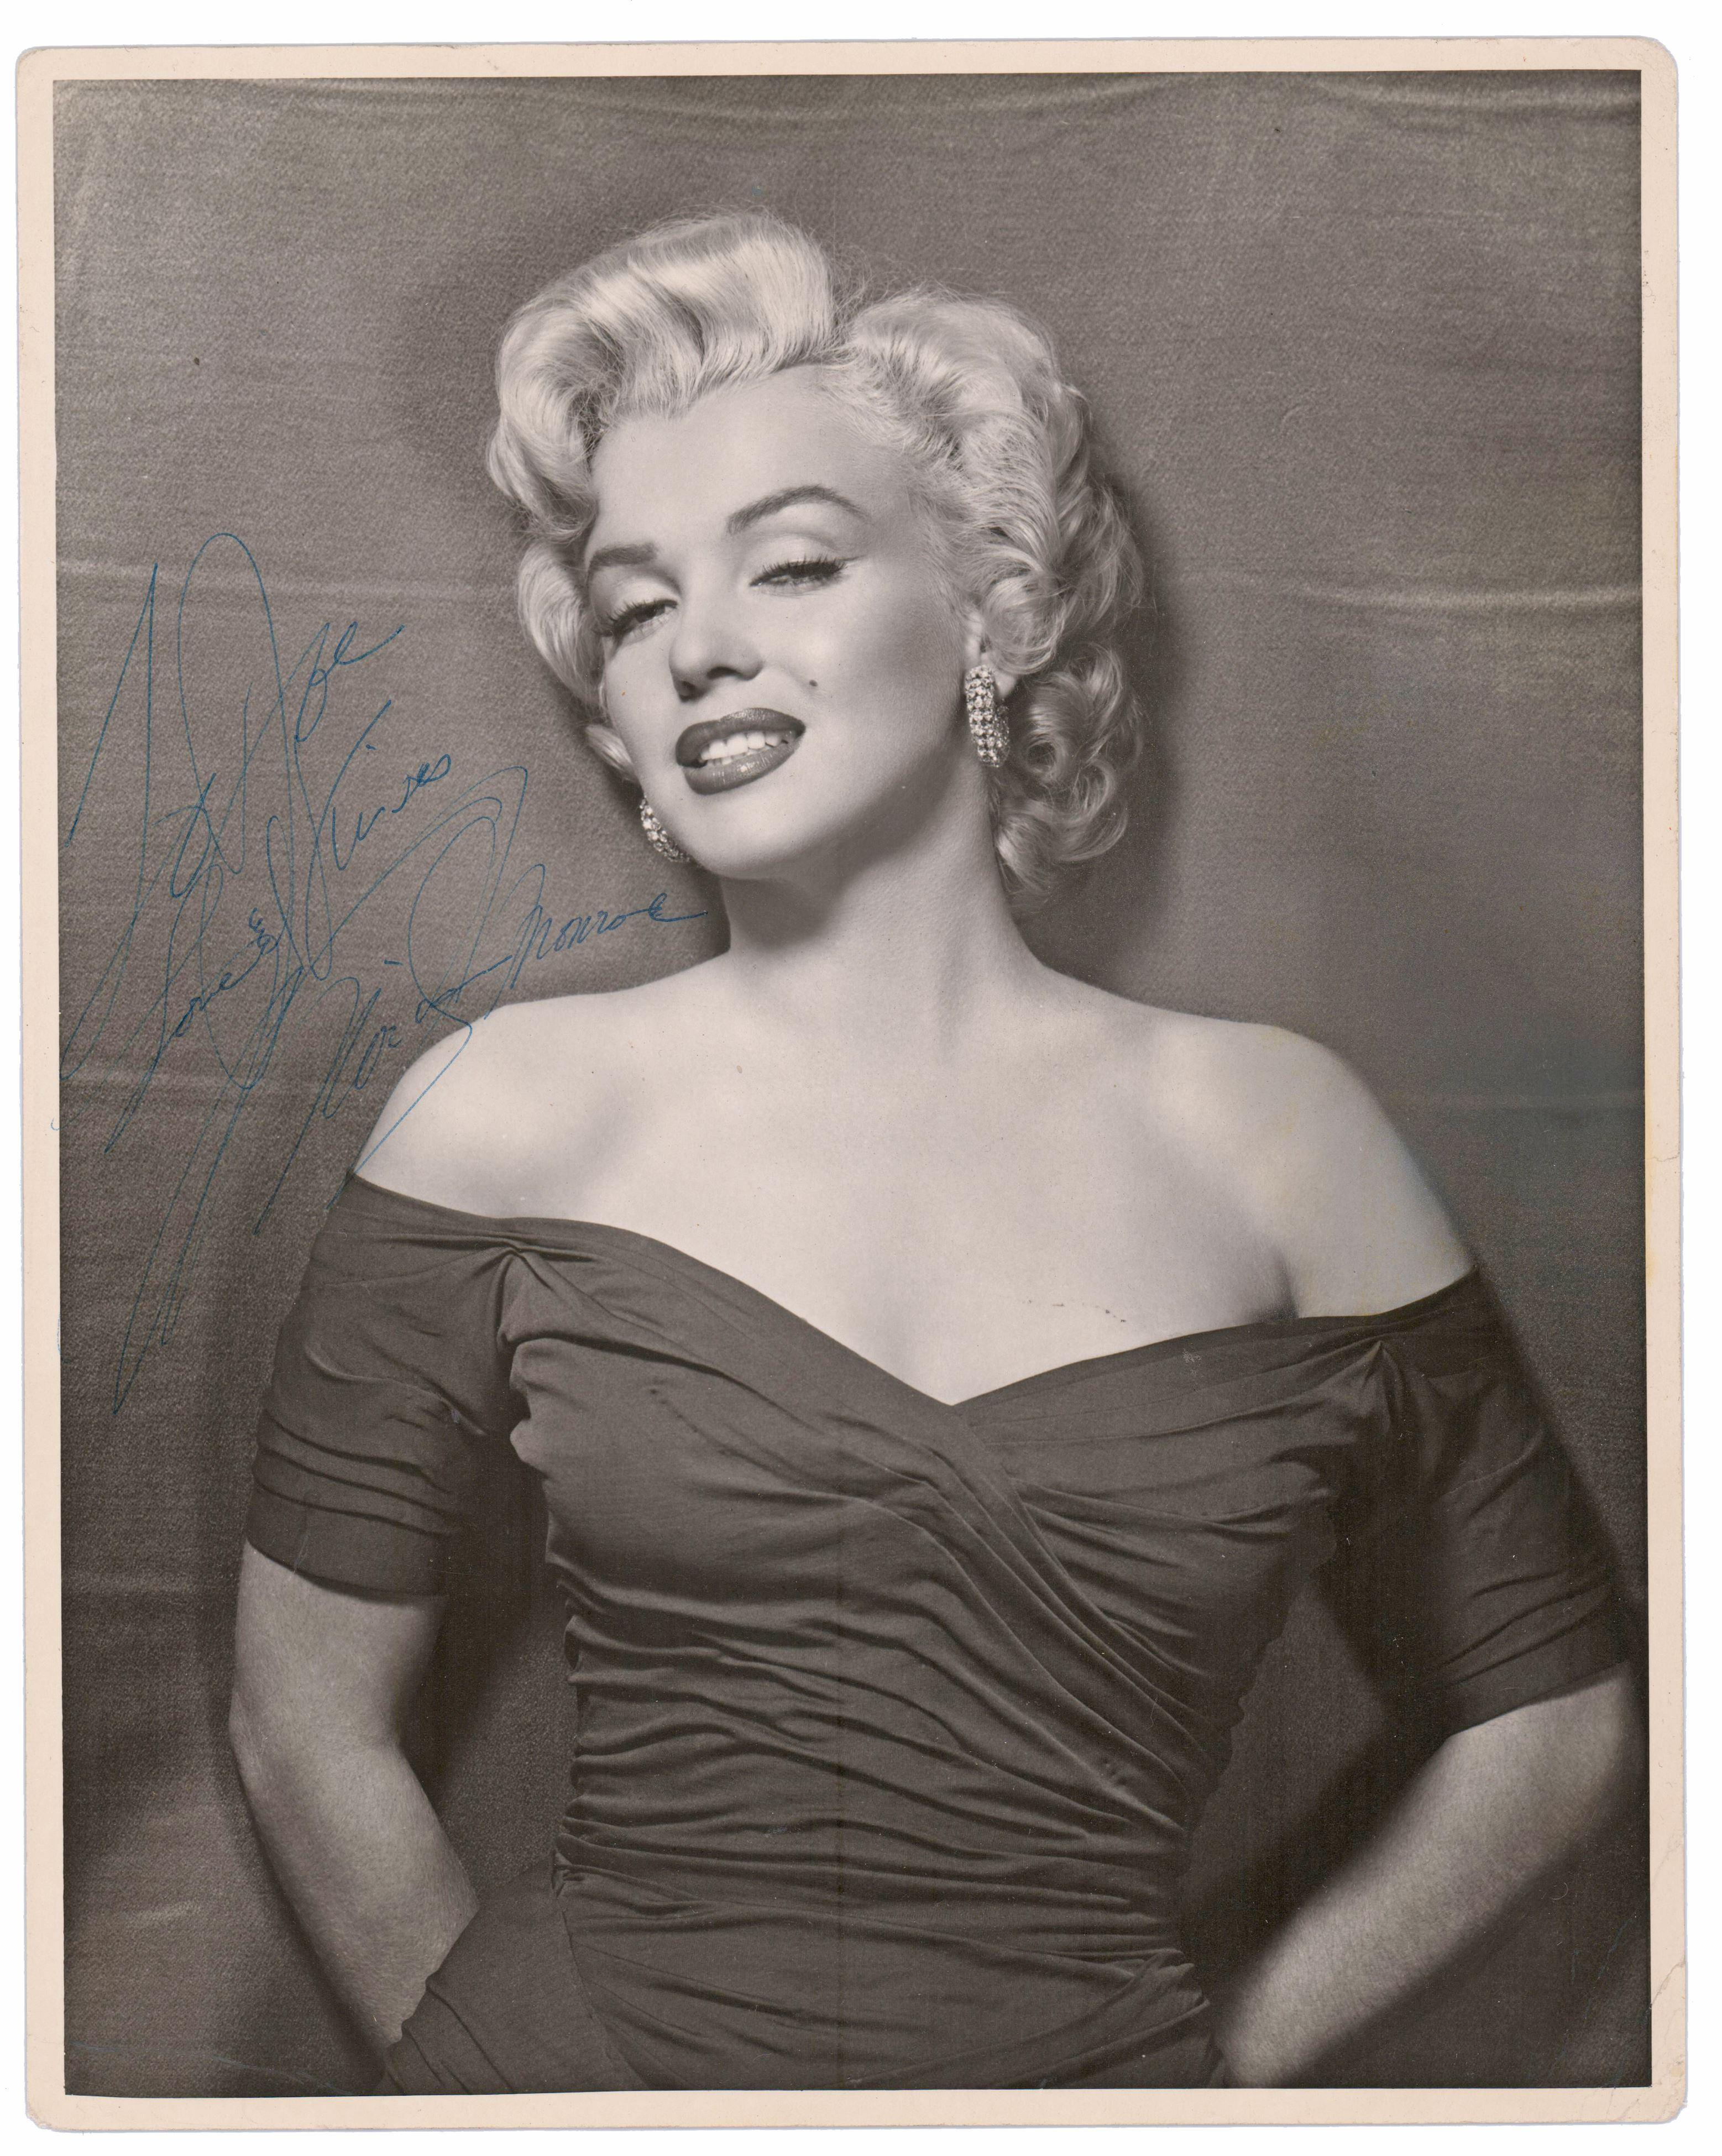 """Marilyn Monroe Signed & Inscribed Portrait """"To Joe ..."""" -- Could it be DiMaggio? Superb!"""